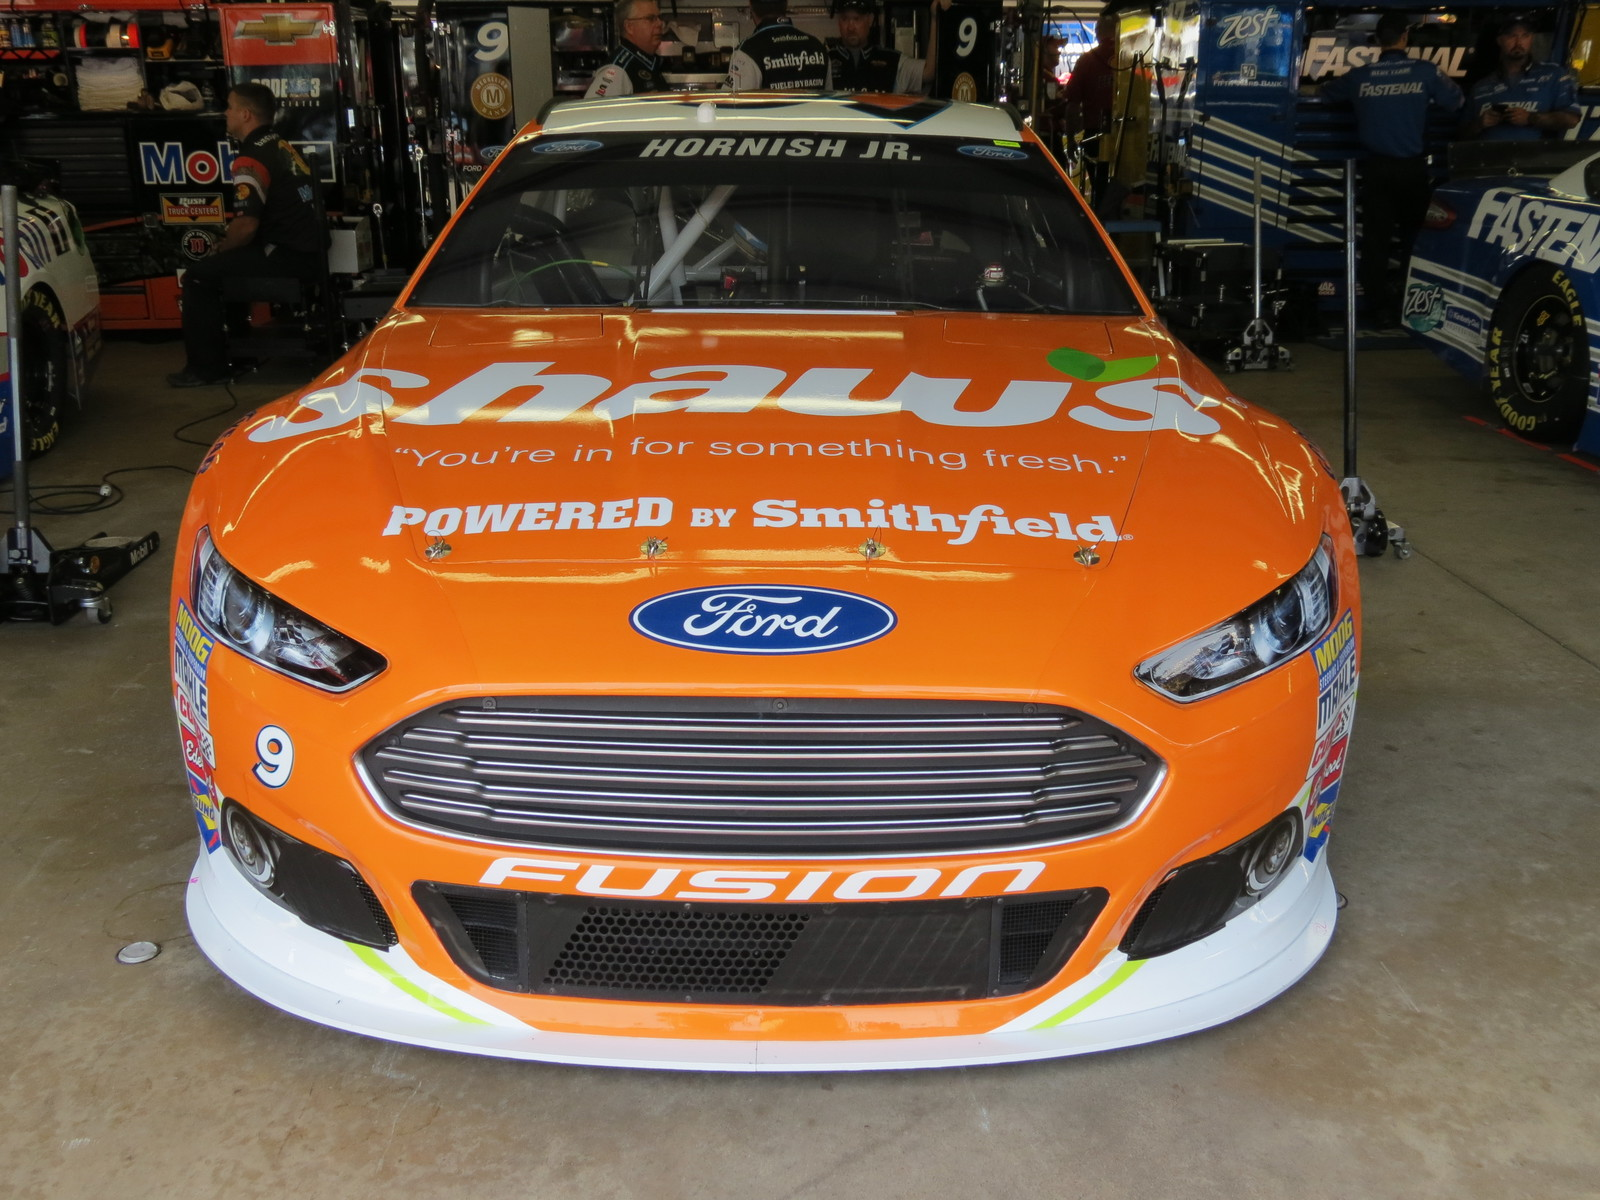 The #9 Shaw's Supermarkets Ford Fusion awaiting first practice at New Hampshire Motor Speedway on July 17th, 2015.